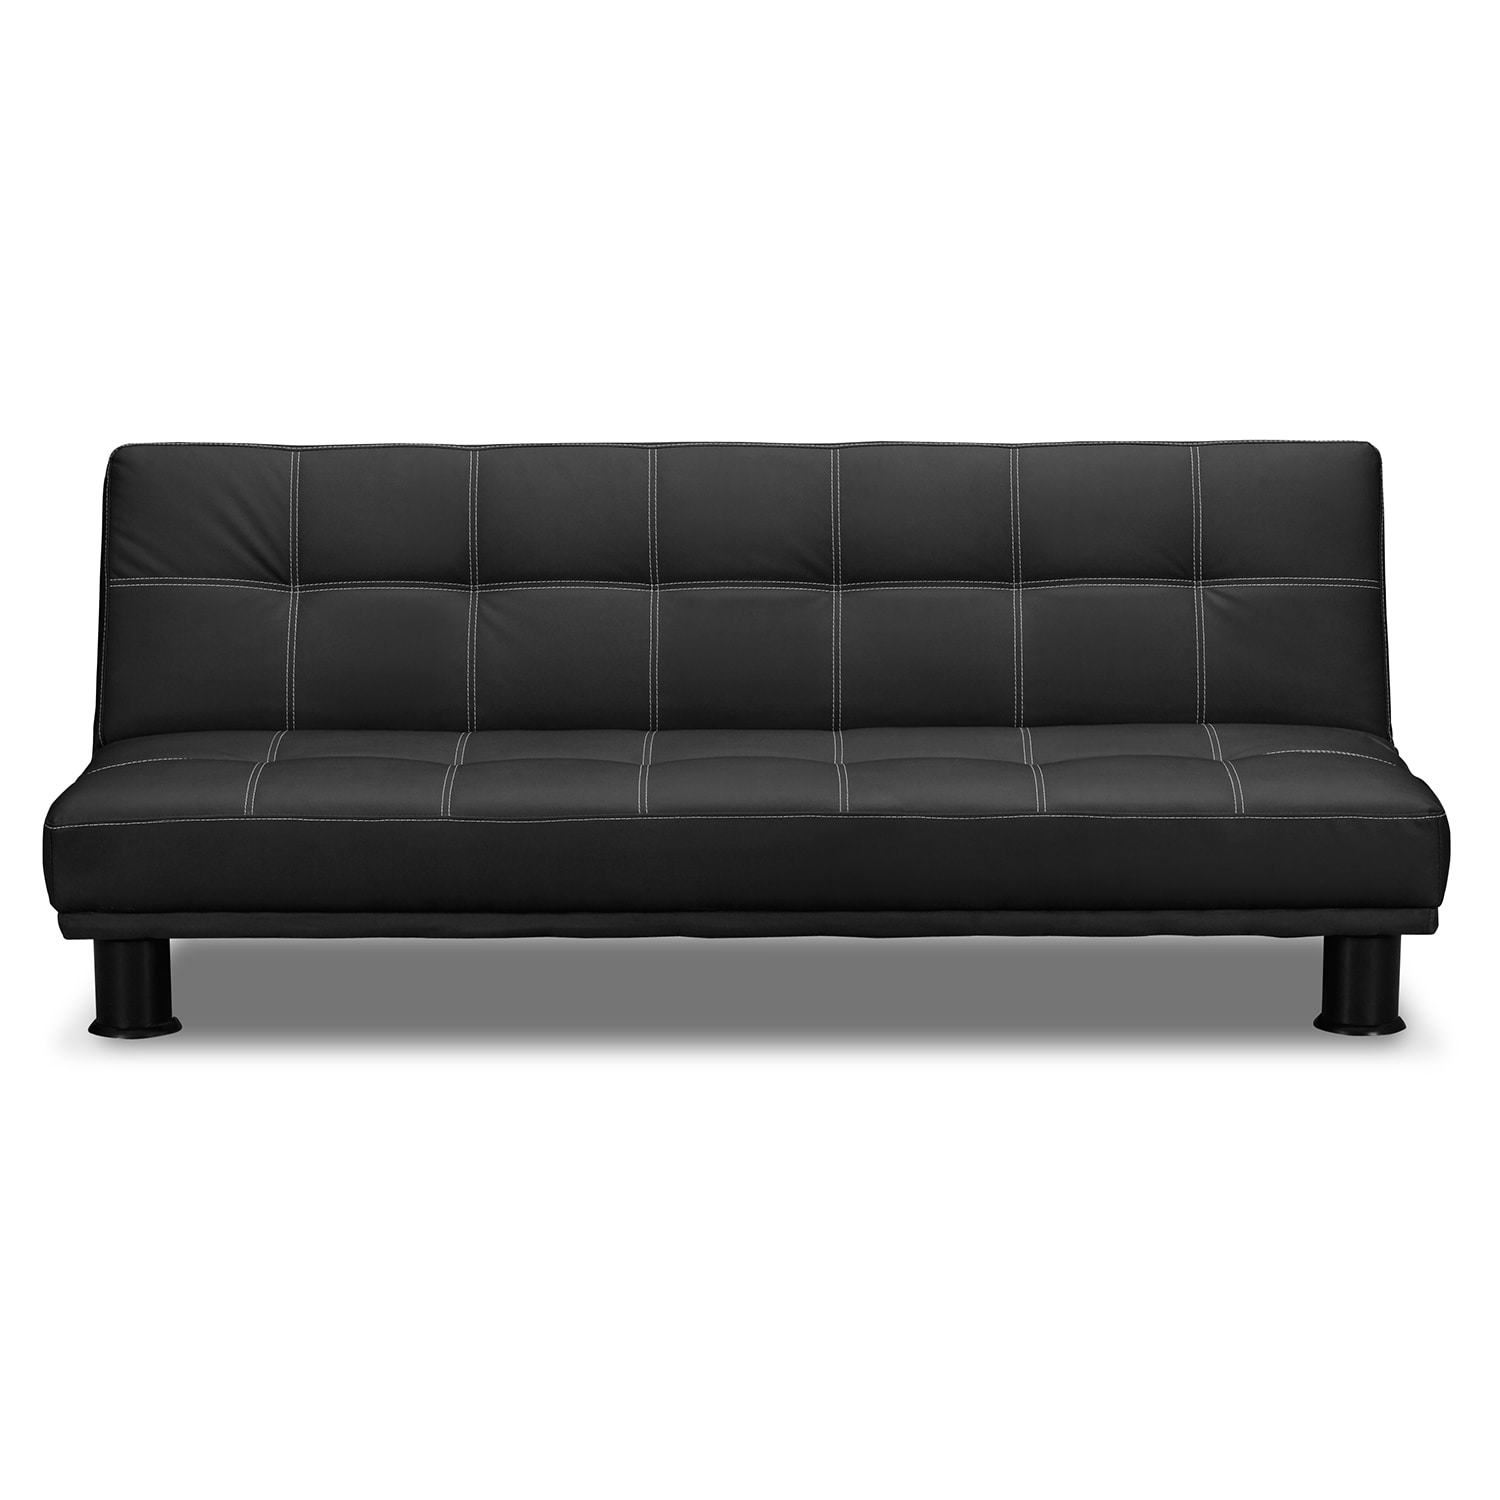 Phyllo Futon Sofa Bed Black